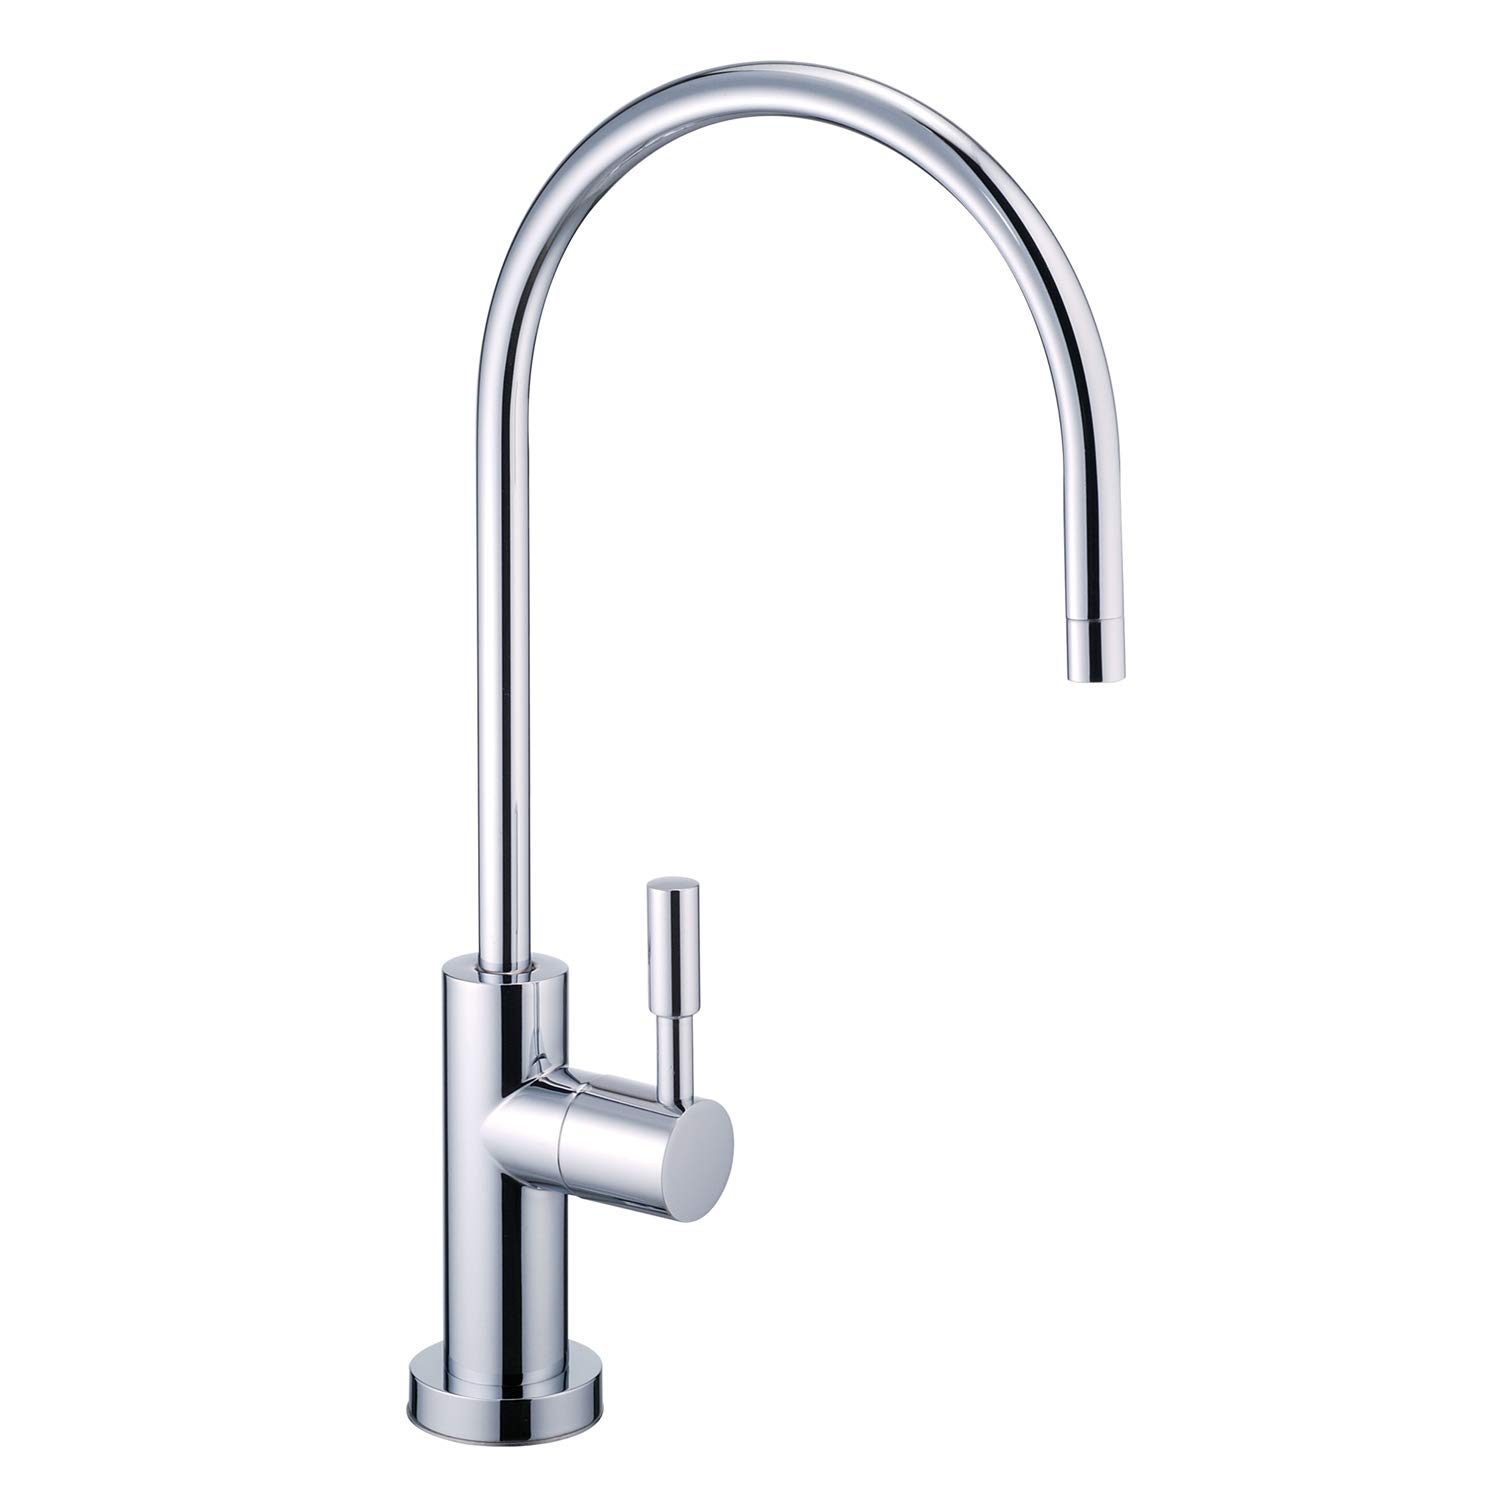 NSF 100% Lead Free Faucet Kitchen Sink Drinking RO Water Filter Reverse Osmosis Faucet Non Air Gap Brushed Nickel (Luxury Chrome)